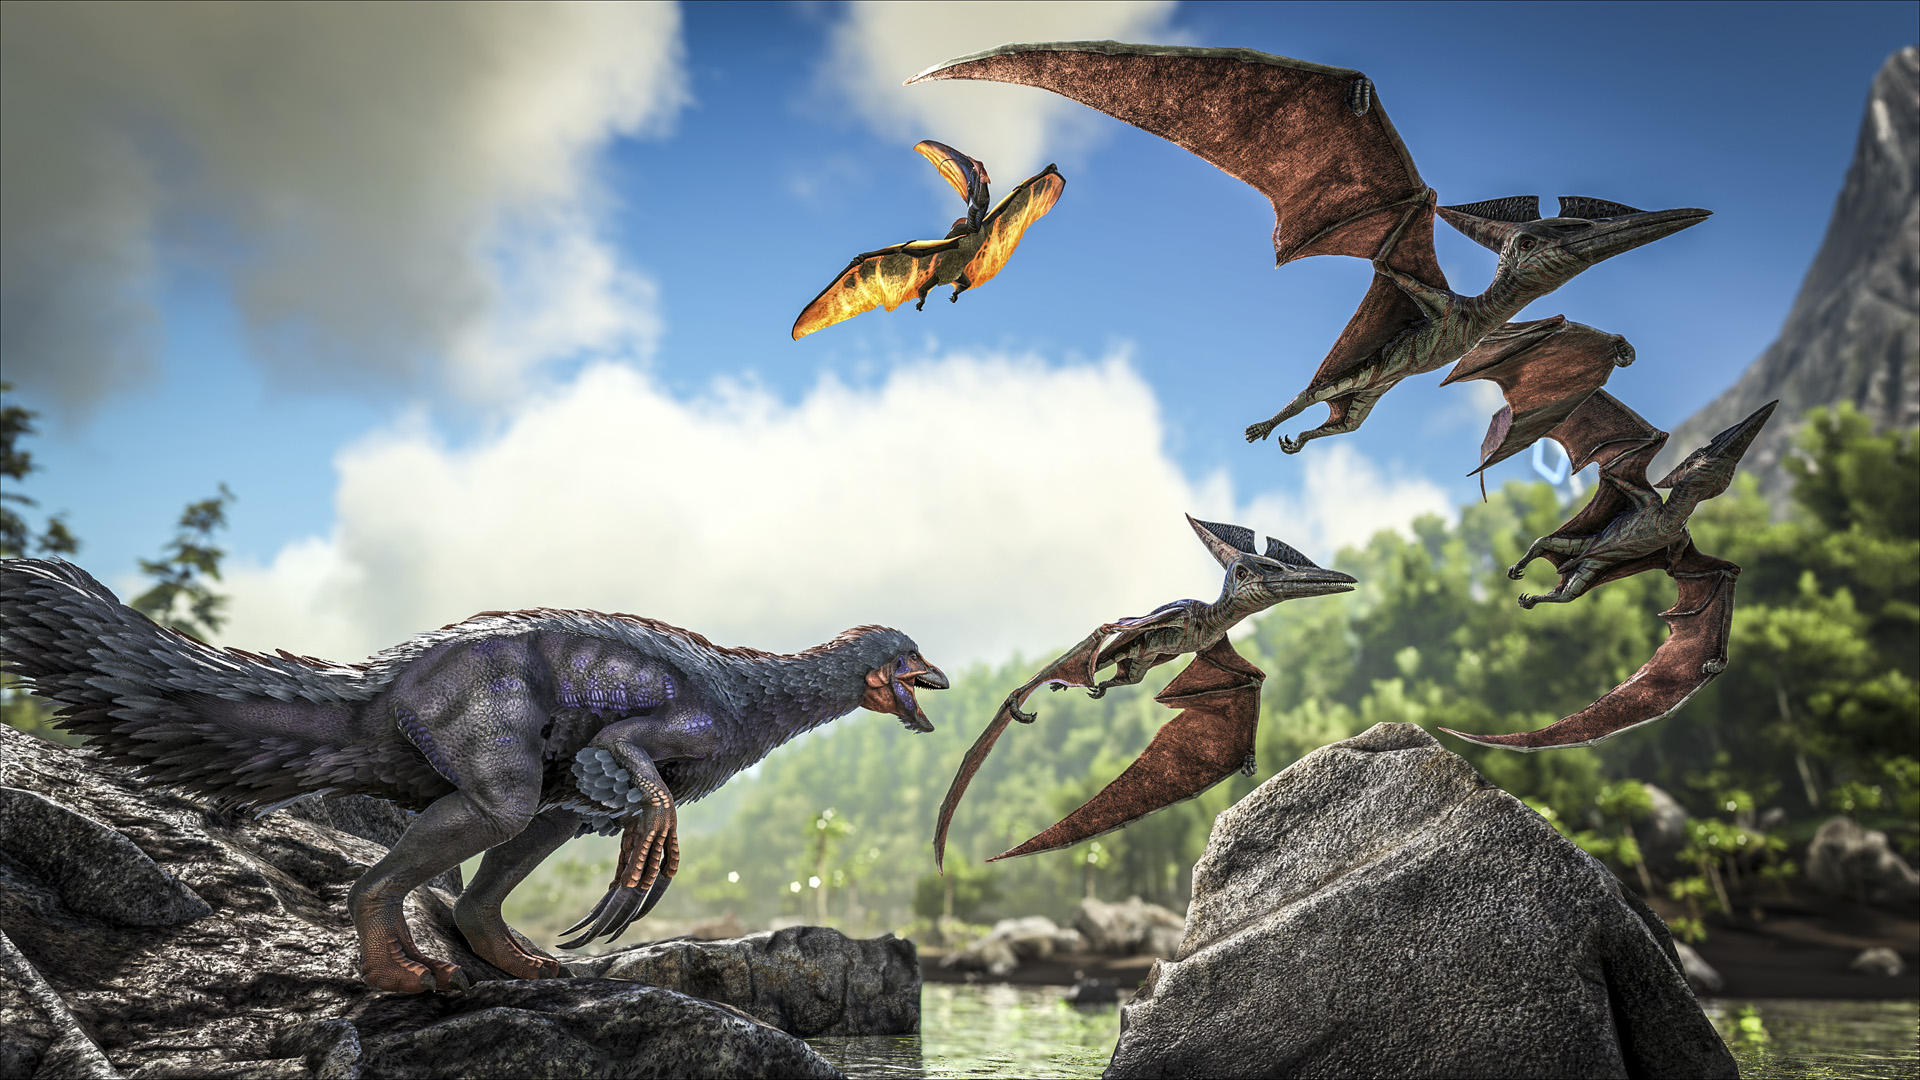 Music Respawn! Gareth Coker Has Fun With Dinosaurs In ARK: Survival